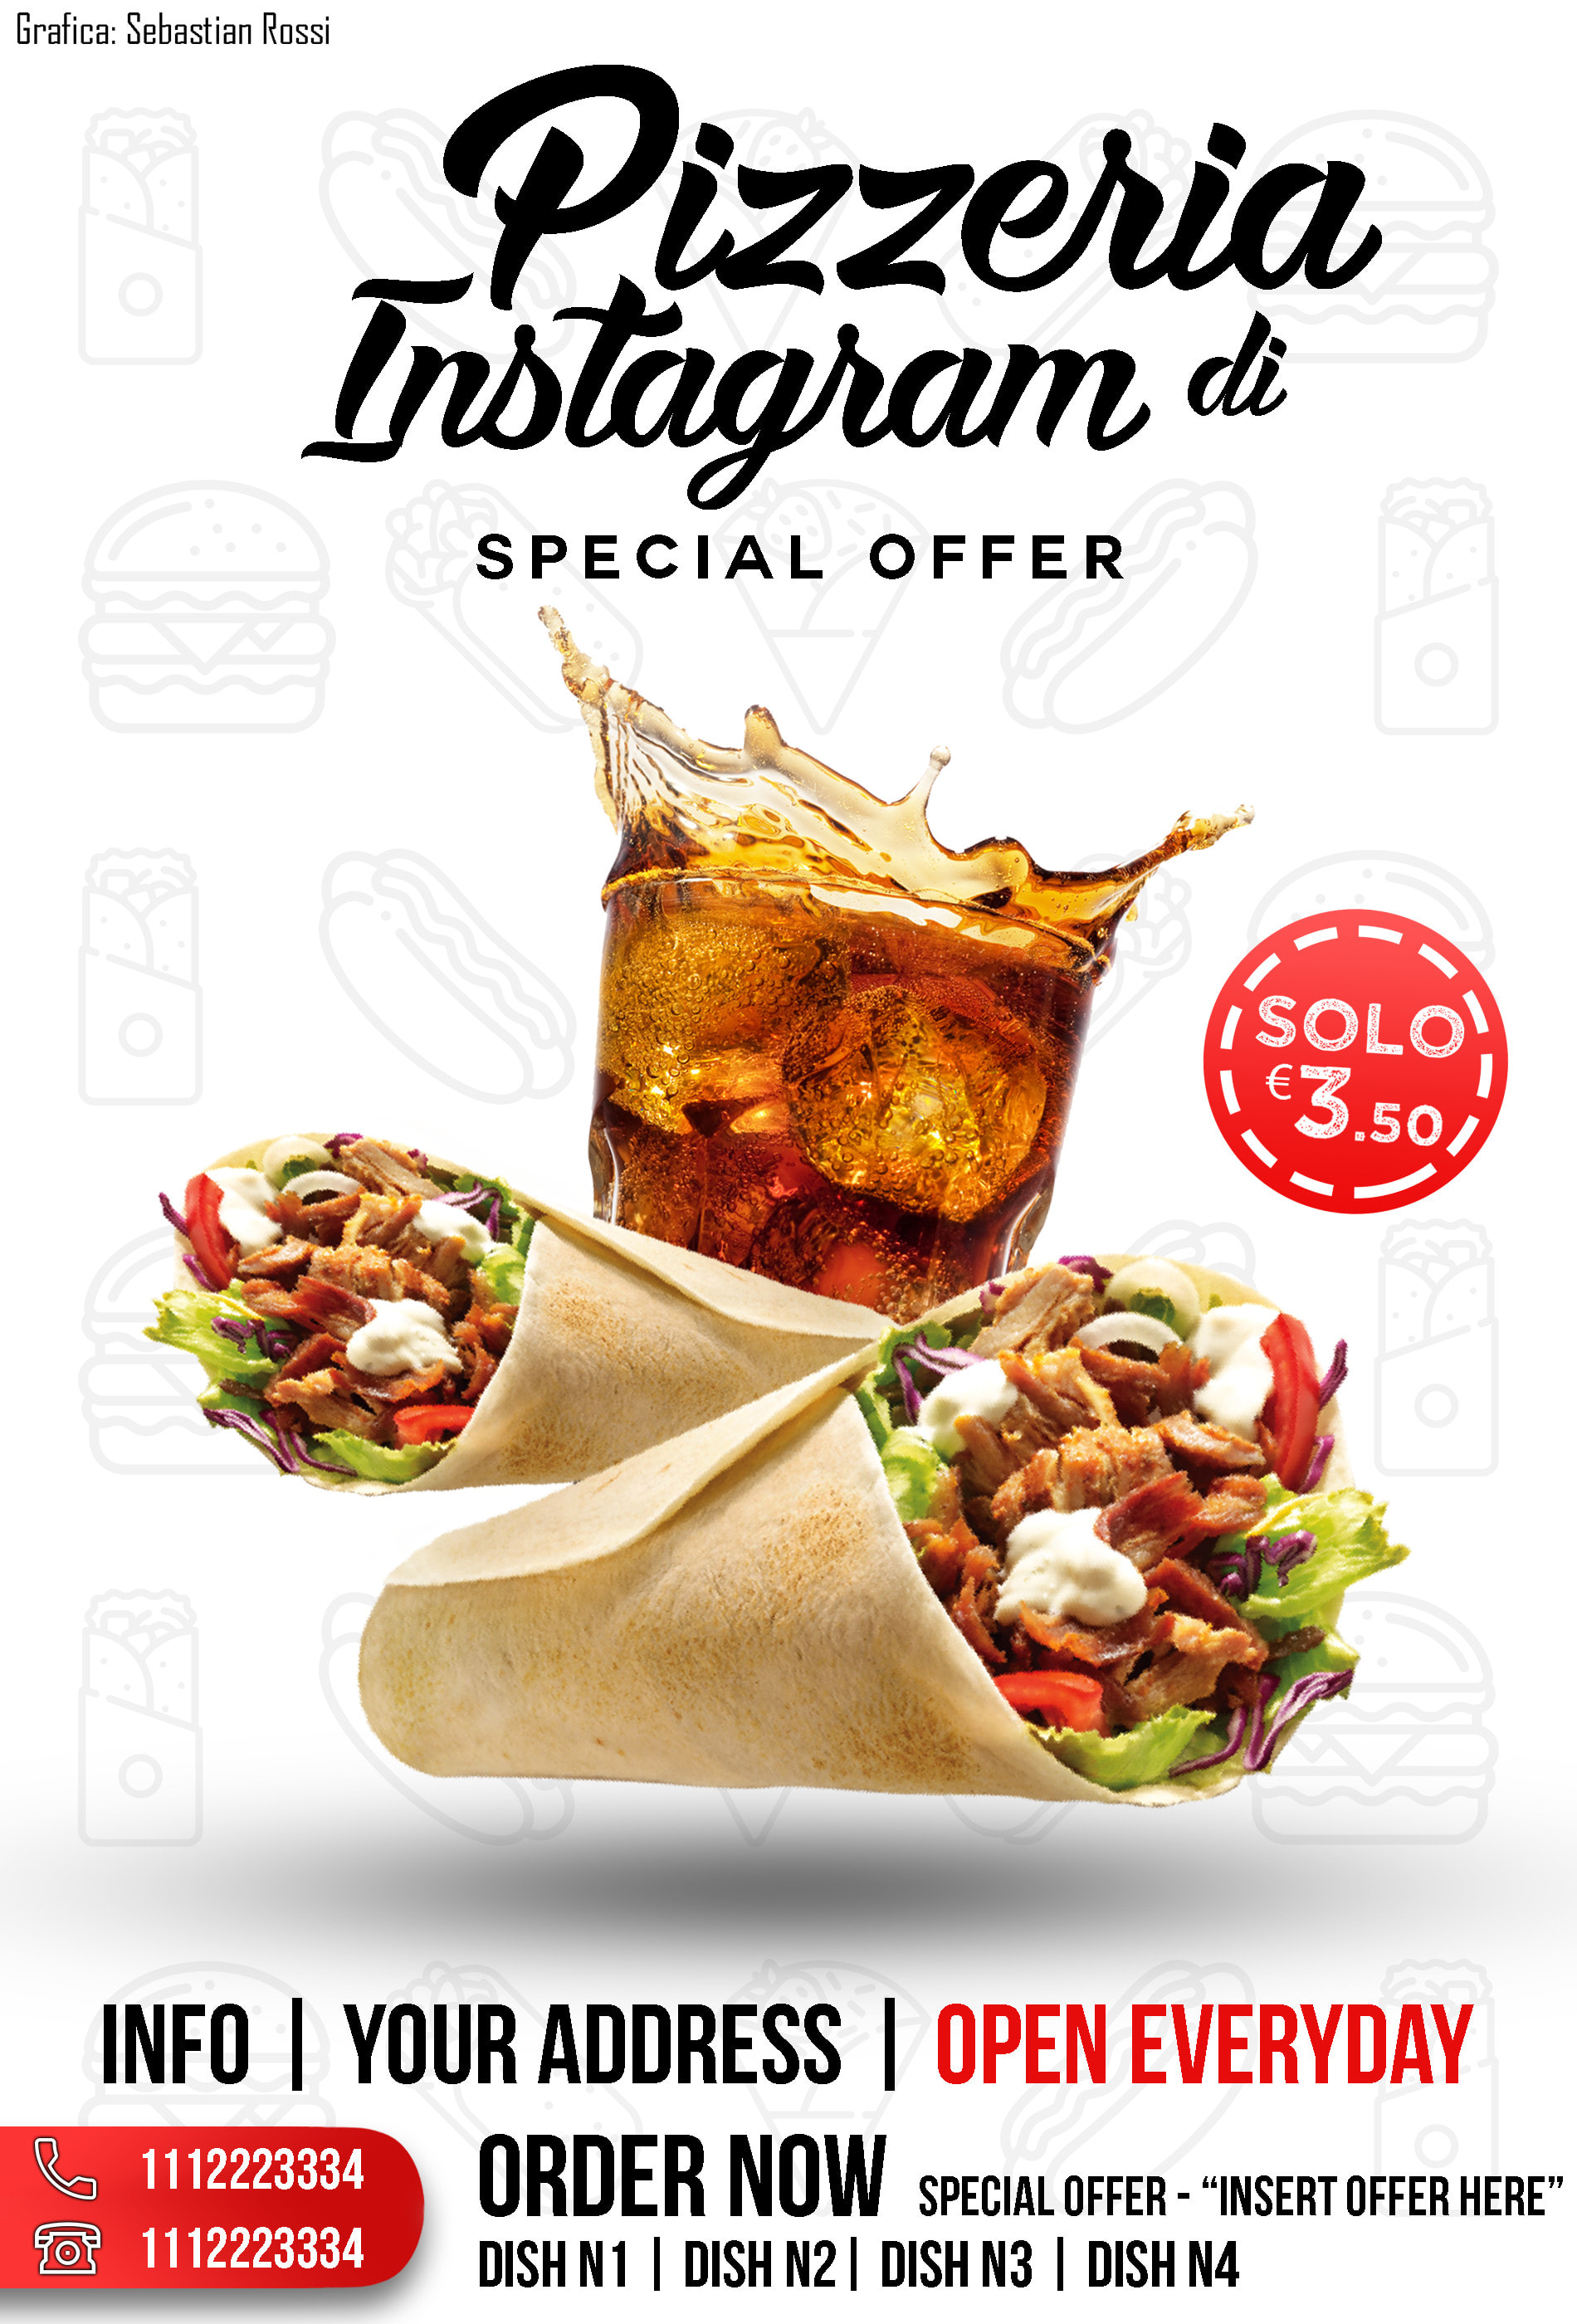 Create An Awesome Flyer For Your Restaurant By Sebastiaann